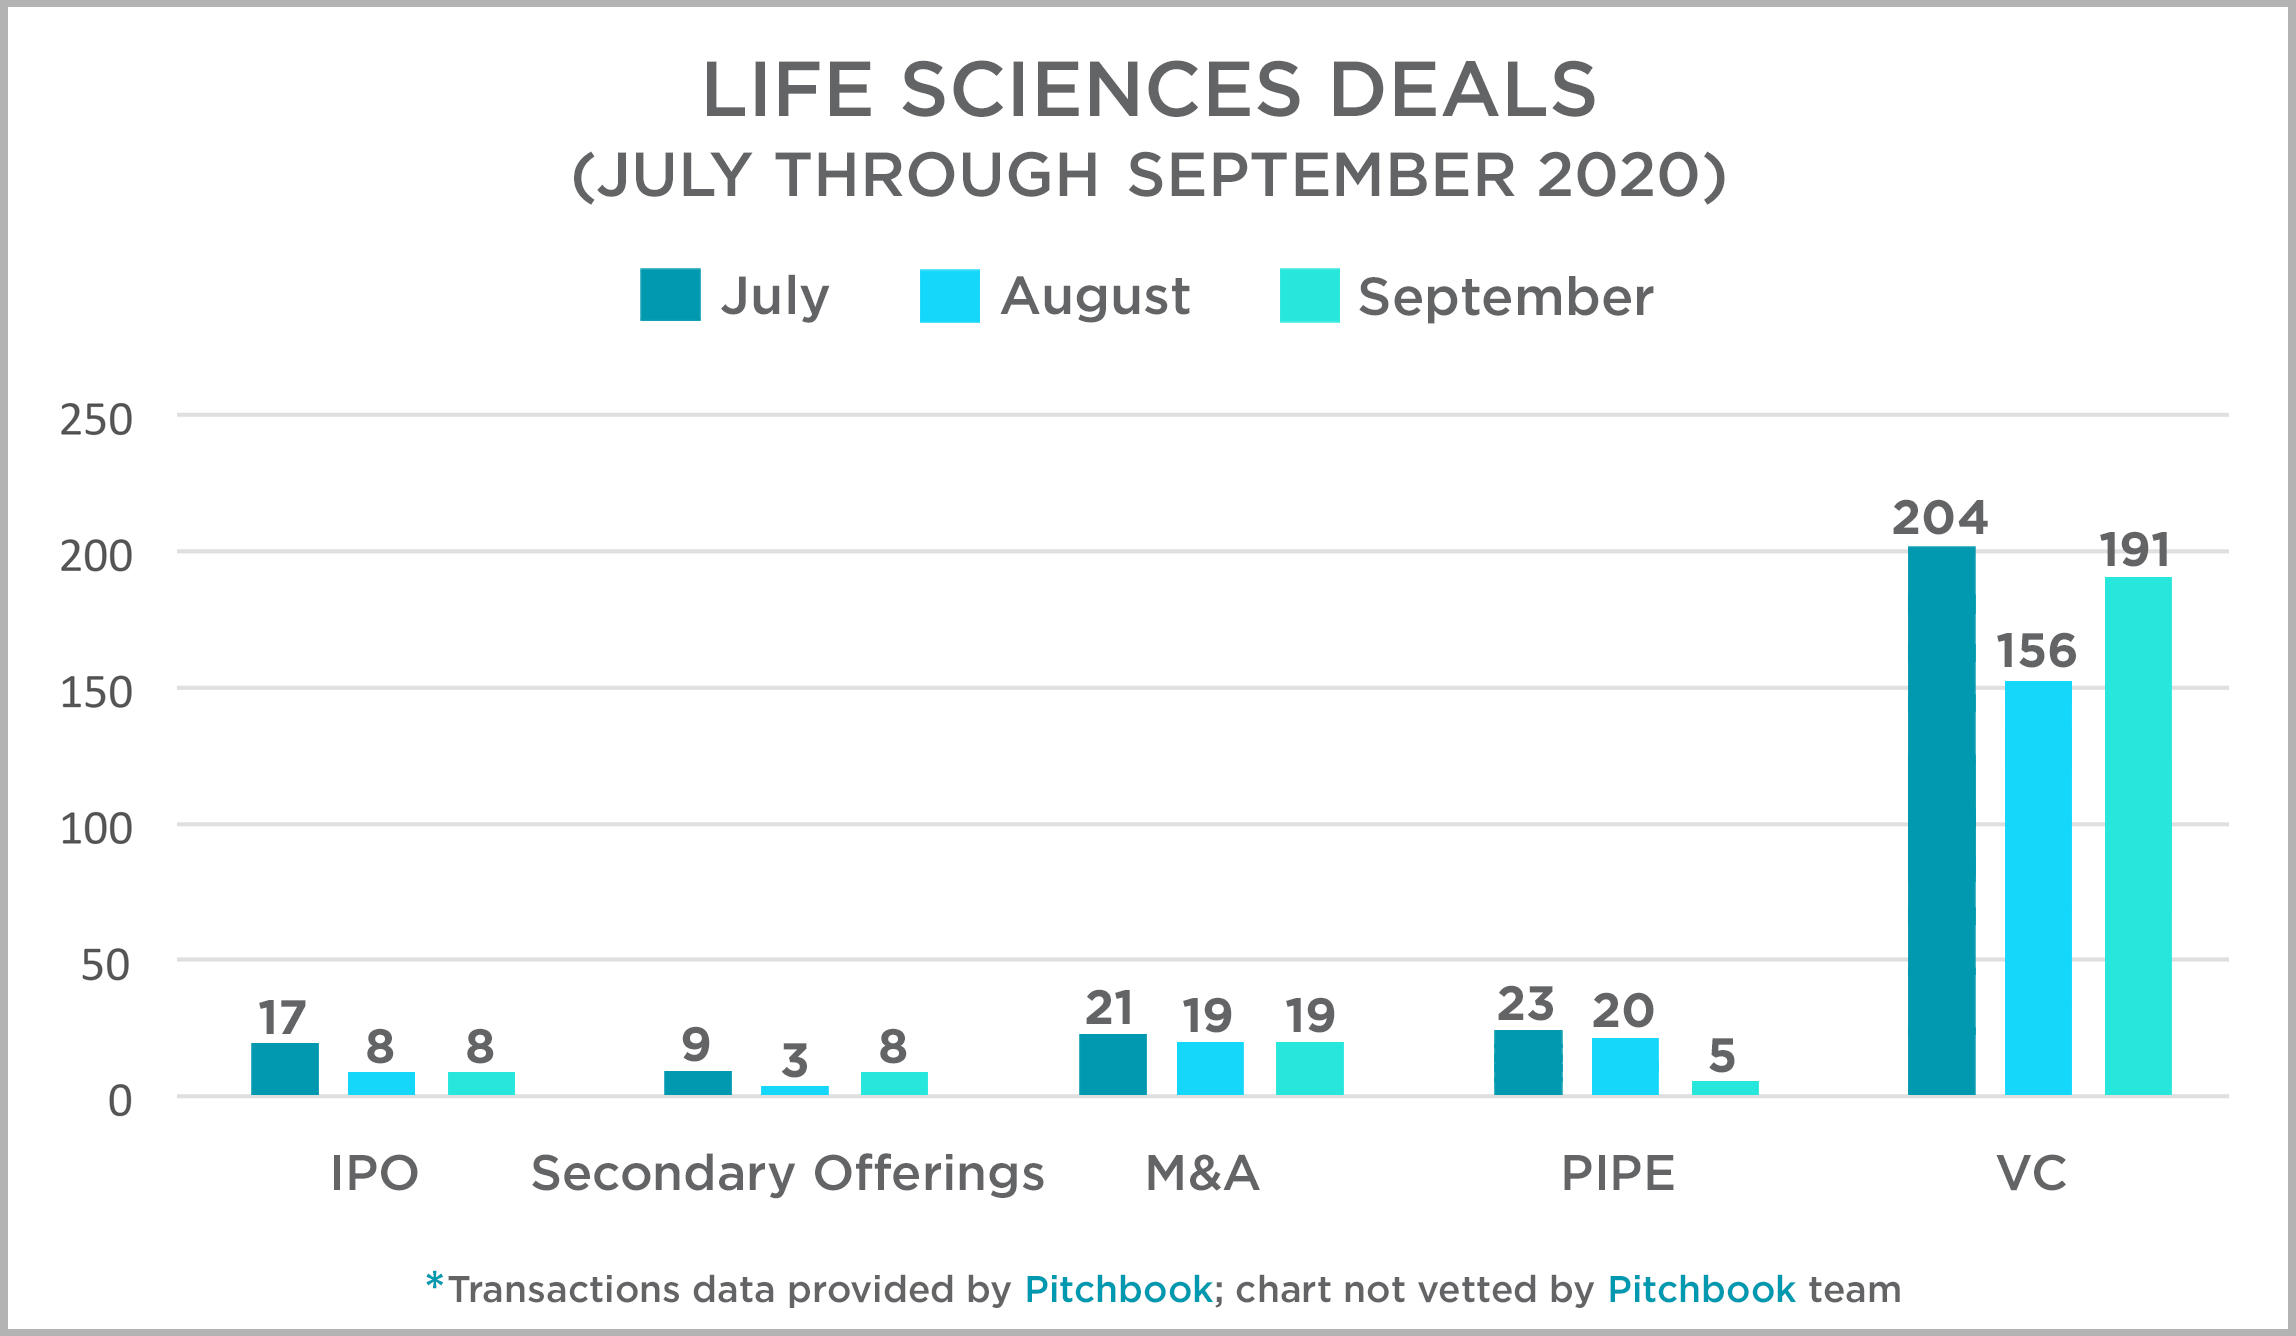 Life Sciences Deals July - September 2020